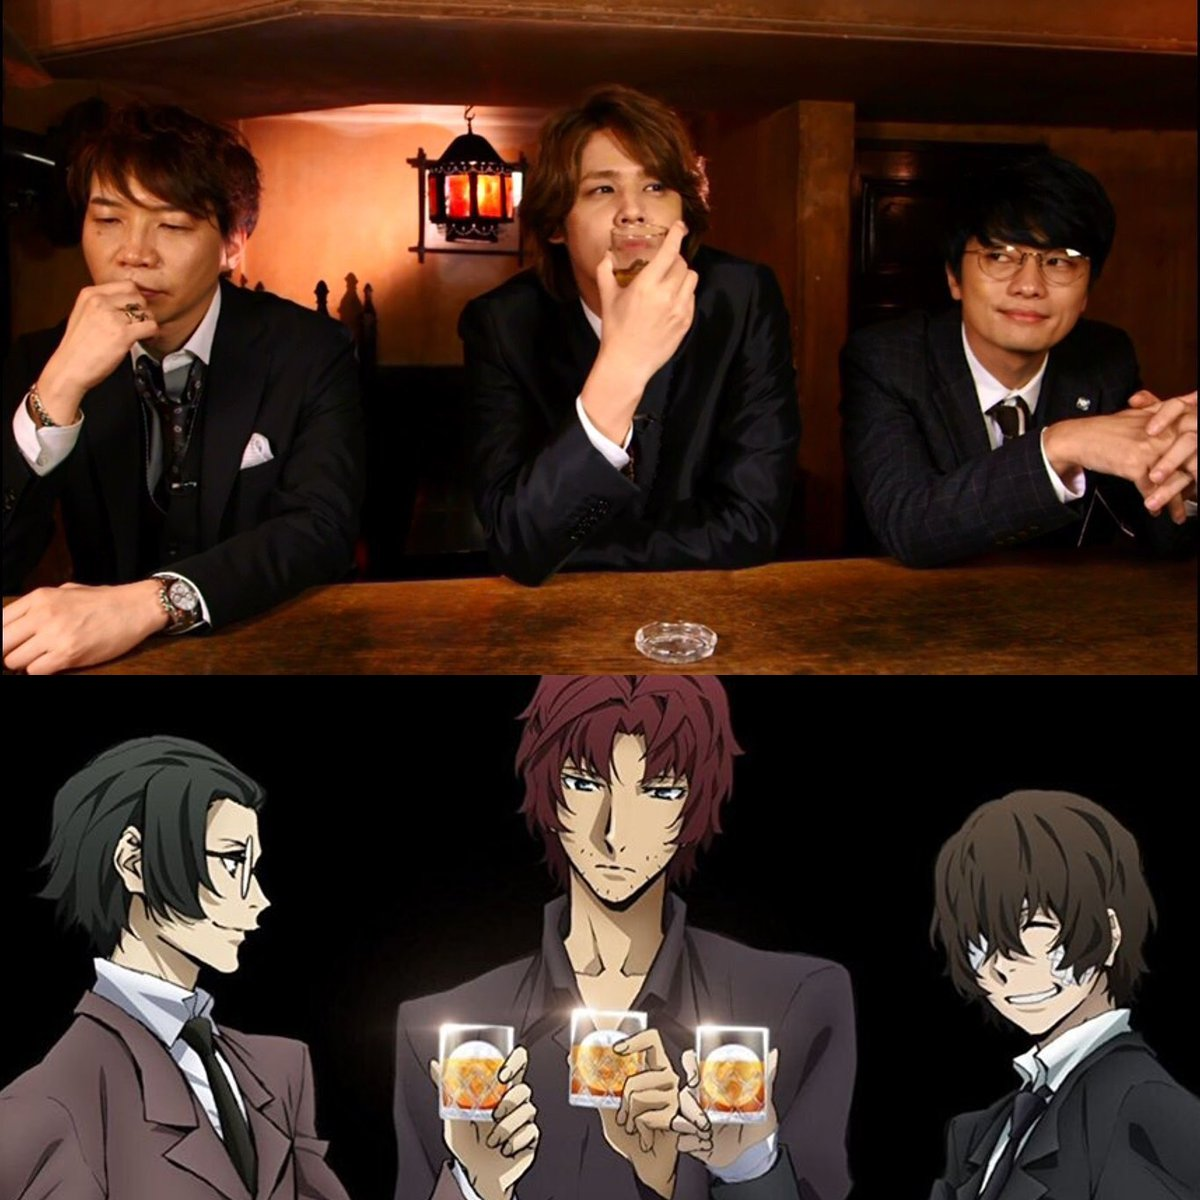 Seiyuus As Anime On Twitter Suwabe Junichi Miyano Mamoru Fukuyama Jun Oda Dazai Ango Bungou Stray Dogs